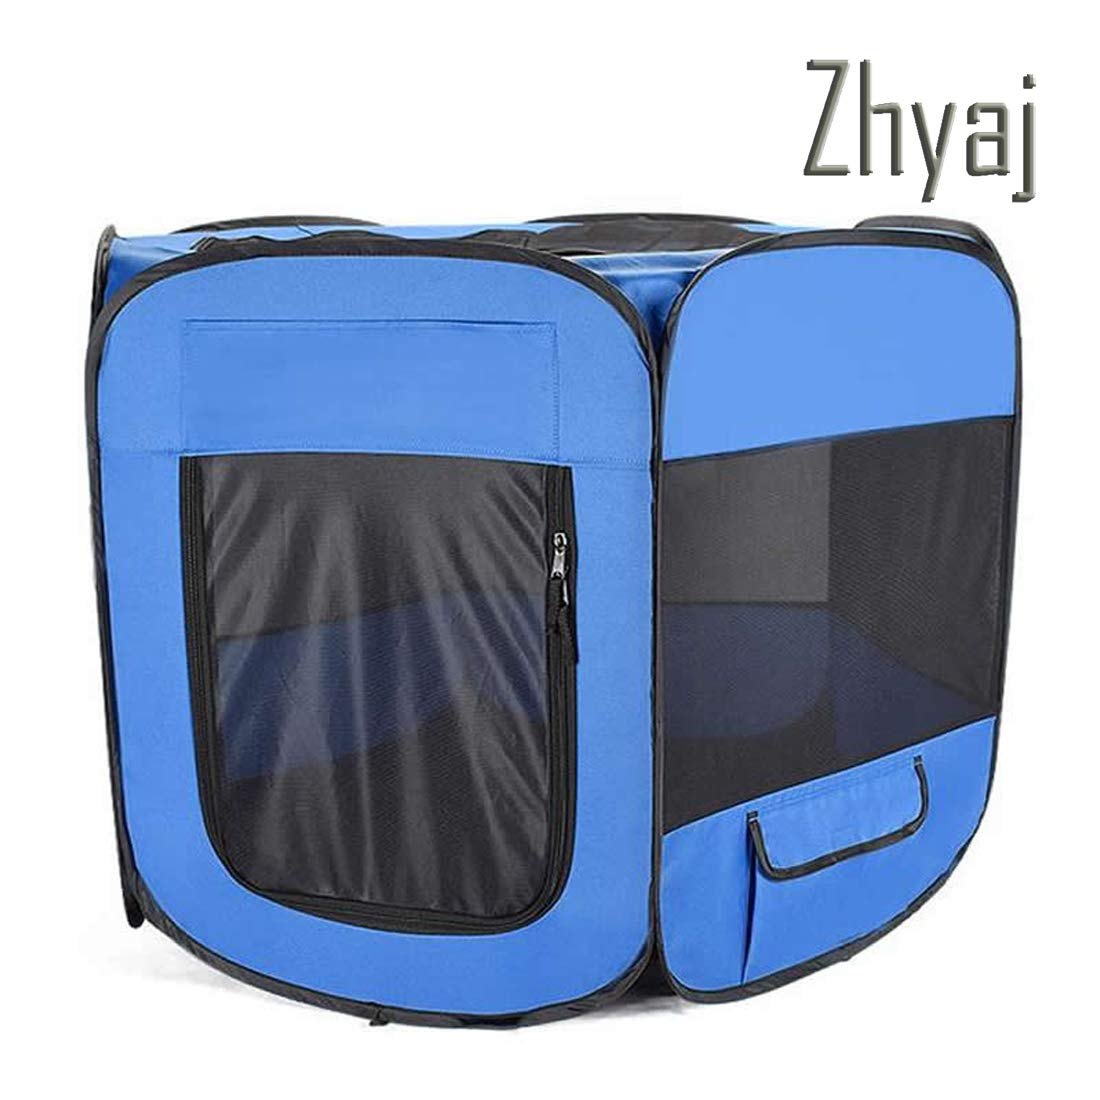 2 A 2 A Zhyaj Dog Kennel Outdoor, Dog Tent Foldable Breathable Puppy Cat House Portable Outdoor Fence Dog Bed Guinea Pig Cage Nest,2,A